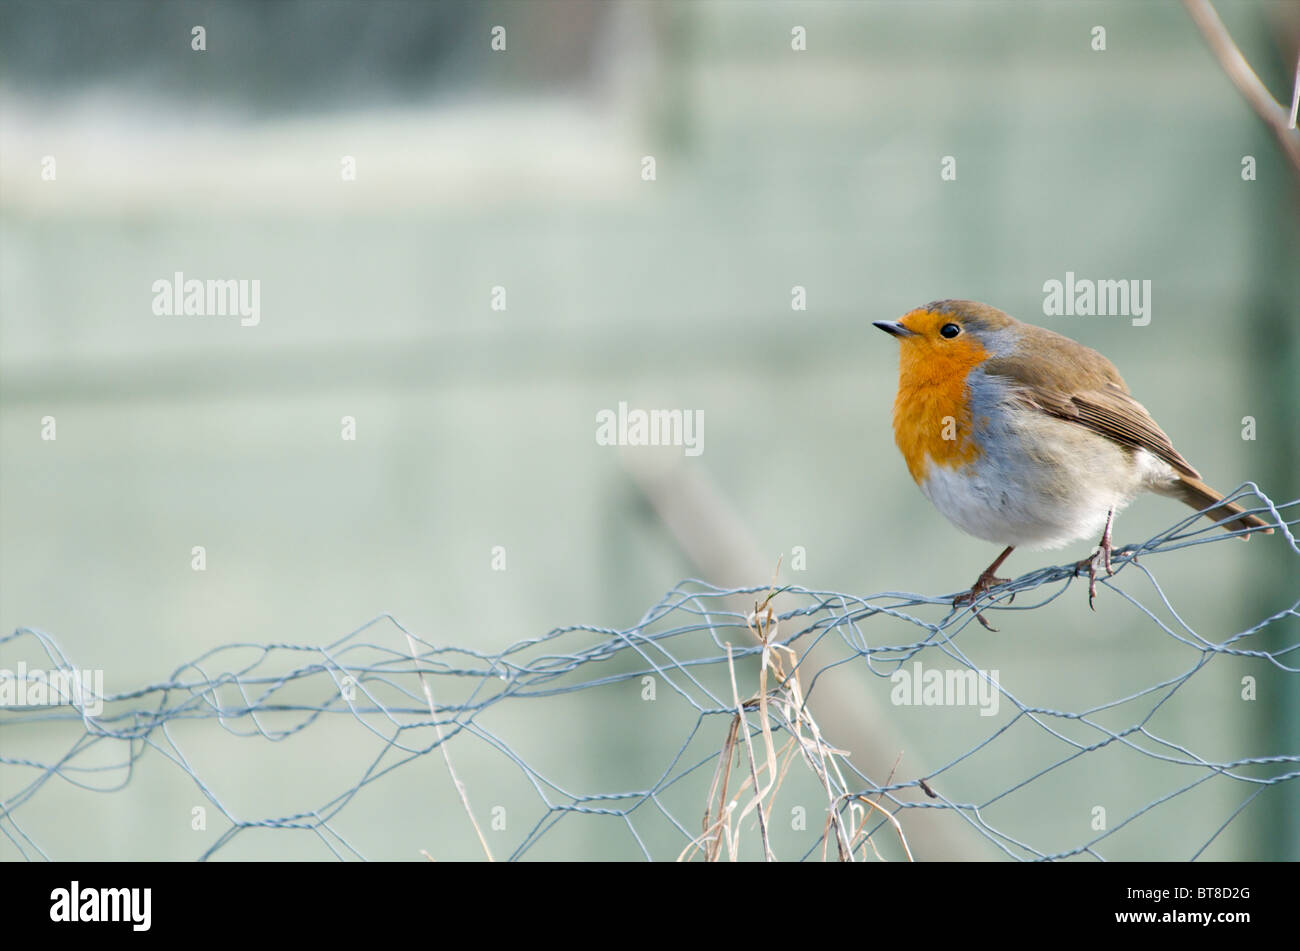 Wire Fence Garden Stock Photos & Wire Fence Garden Stock Images - Alamy